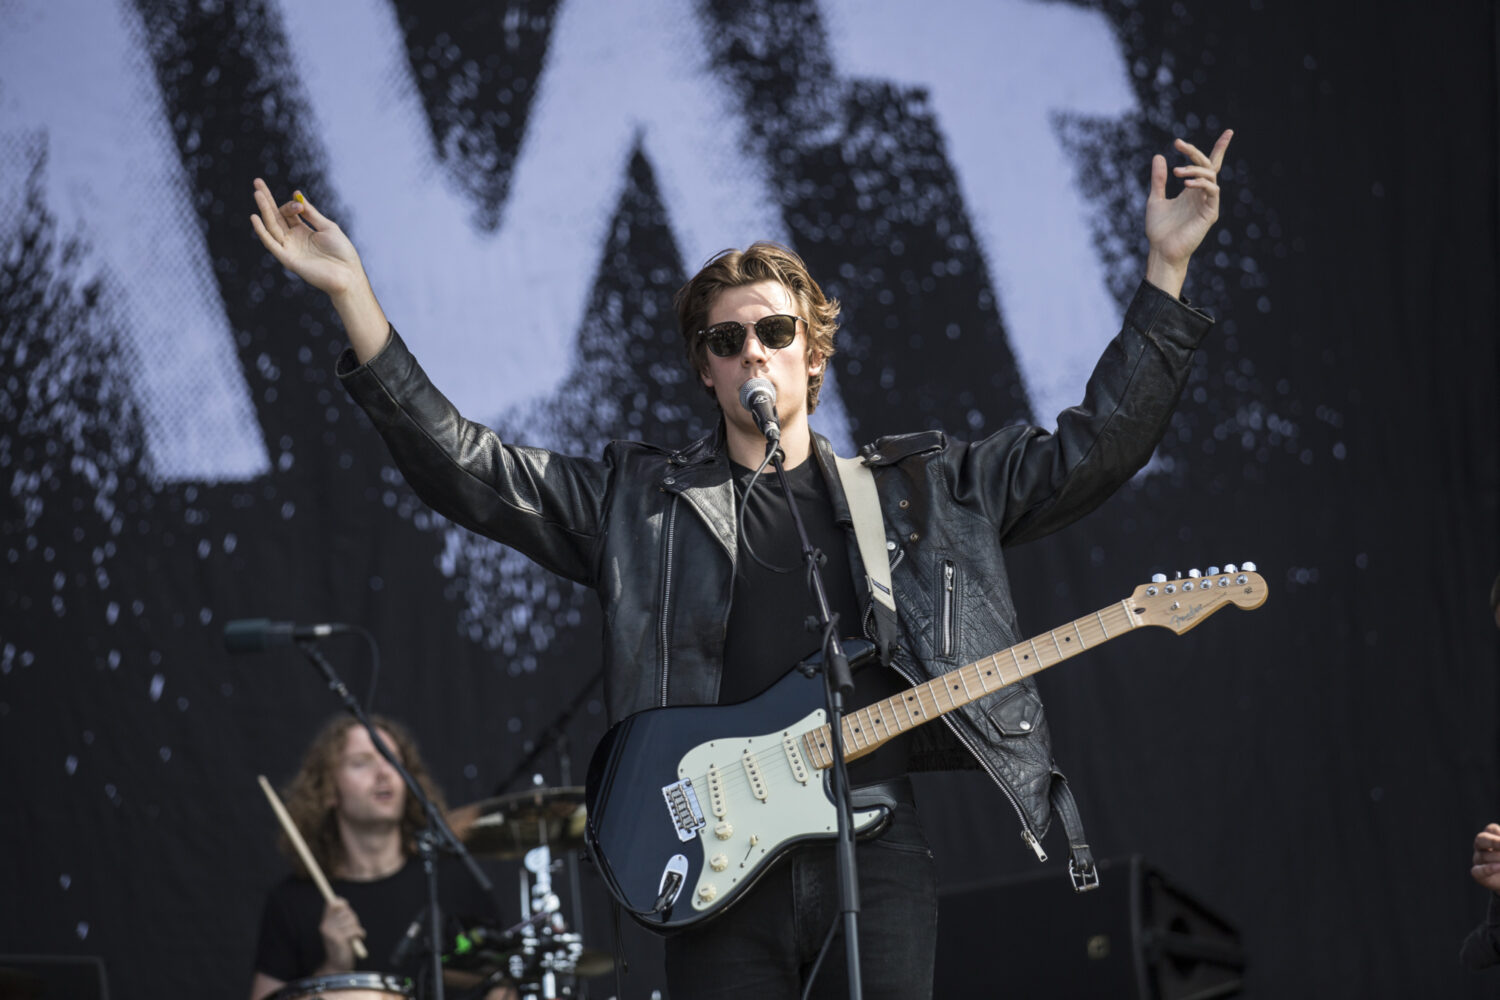 VANT announce 'The Last Days Of Punk' UK tour